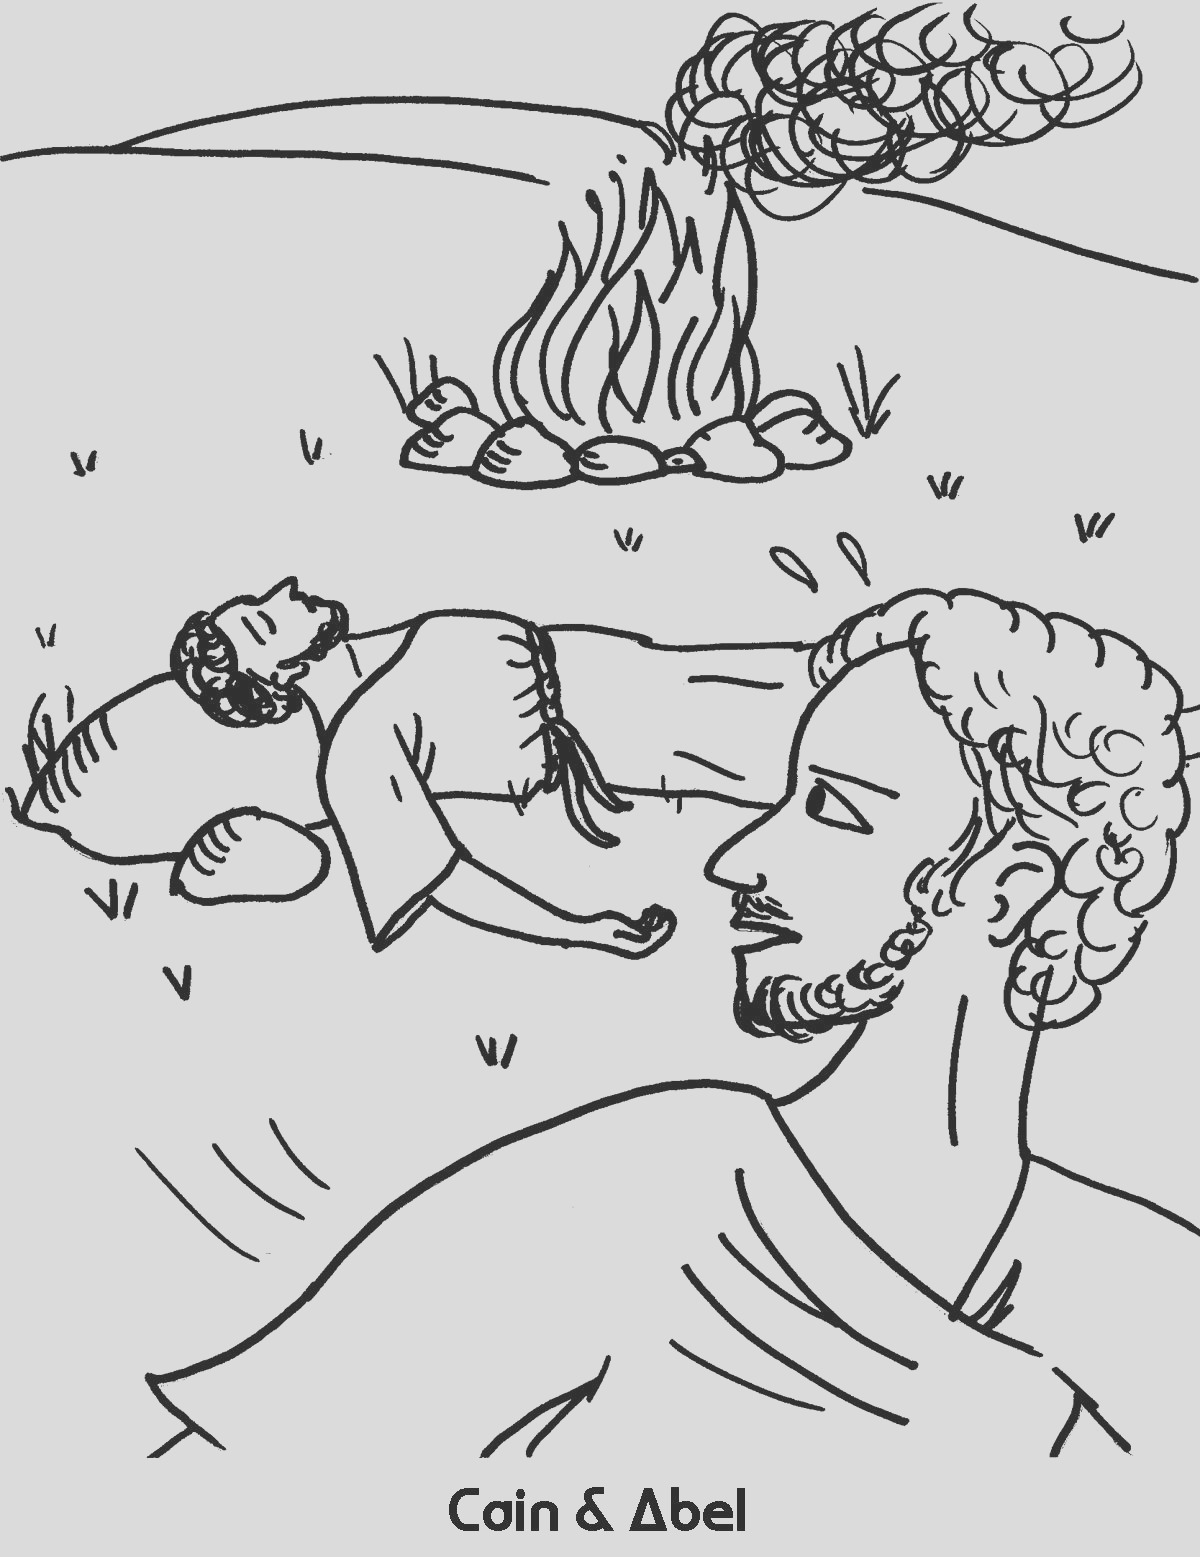 cain and abel coloring sheet